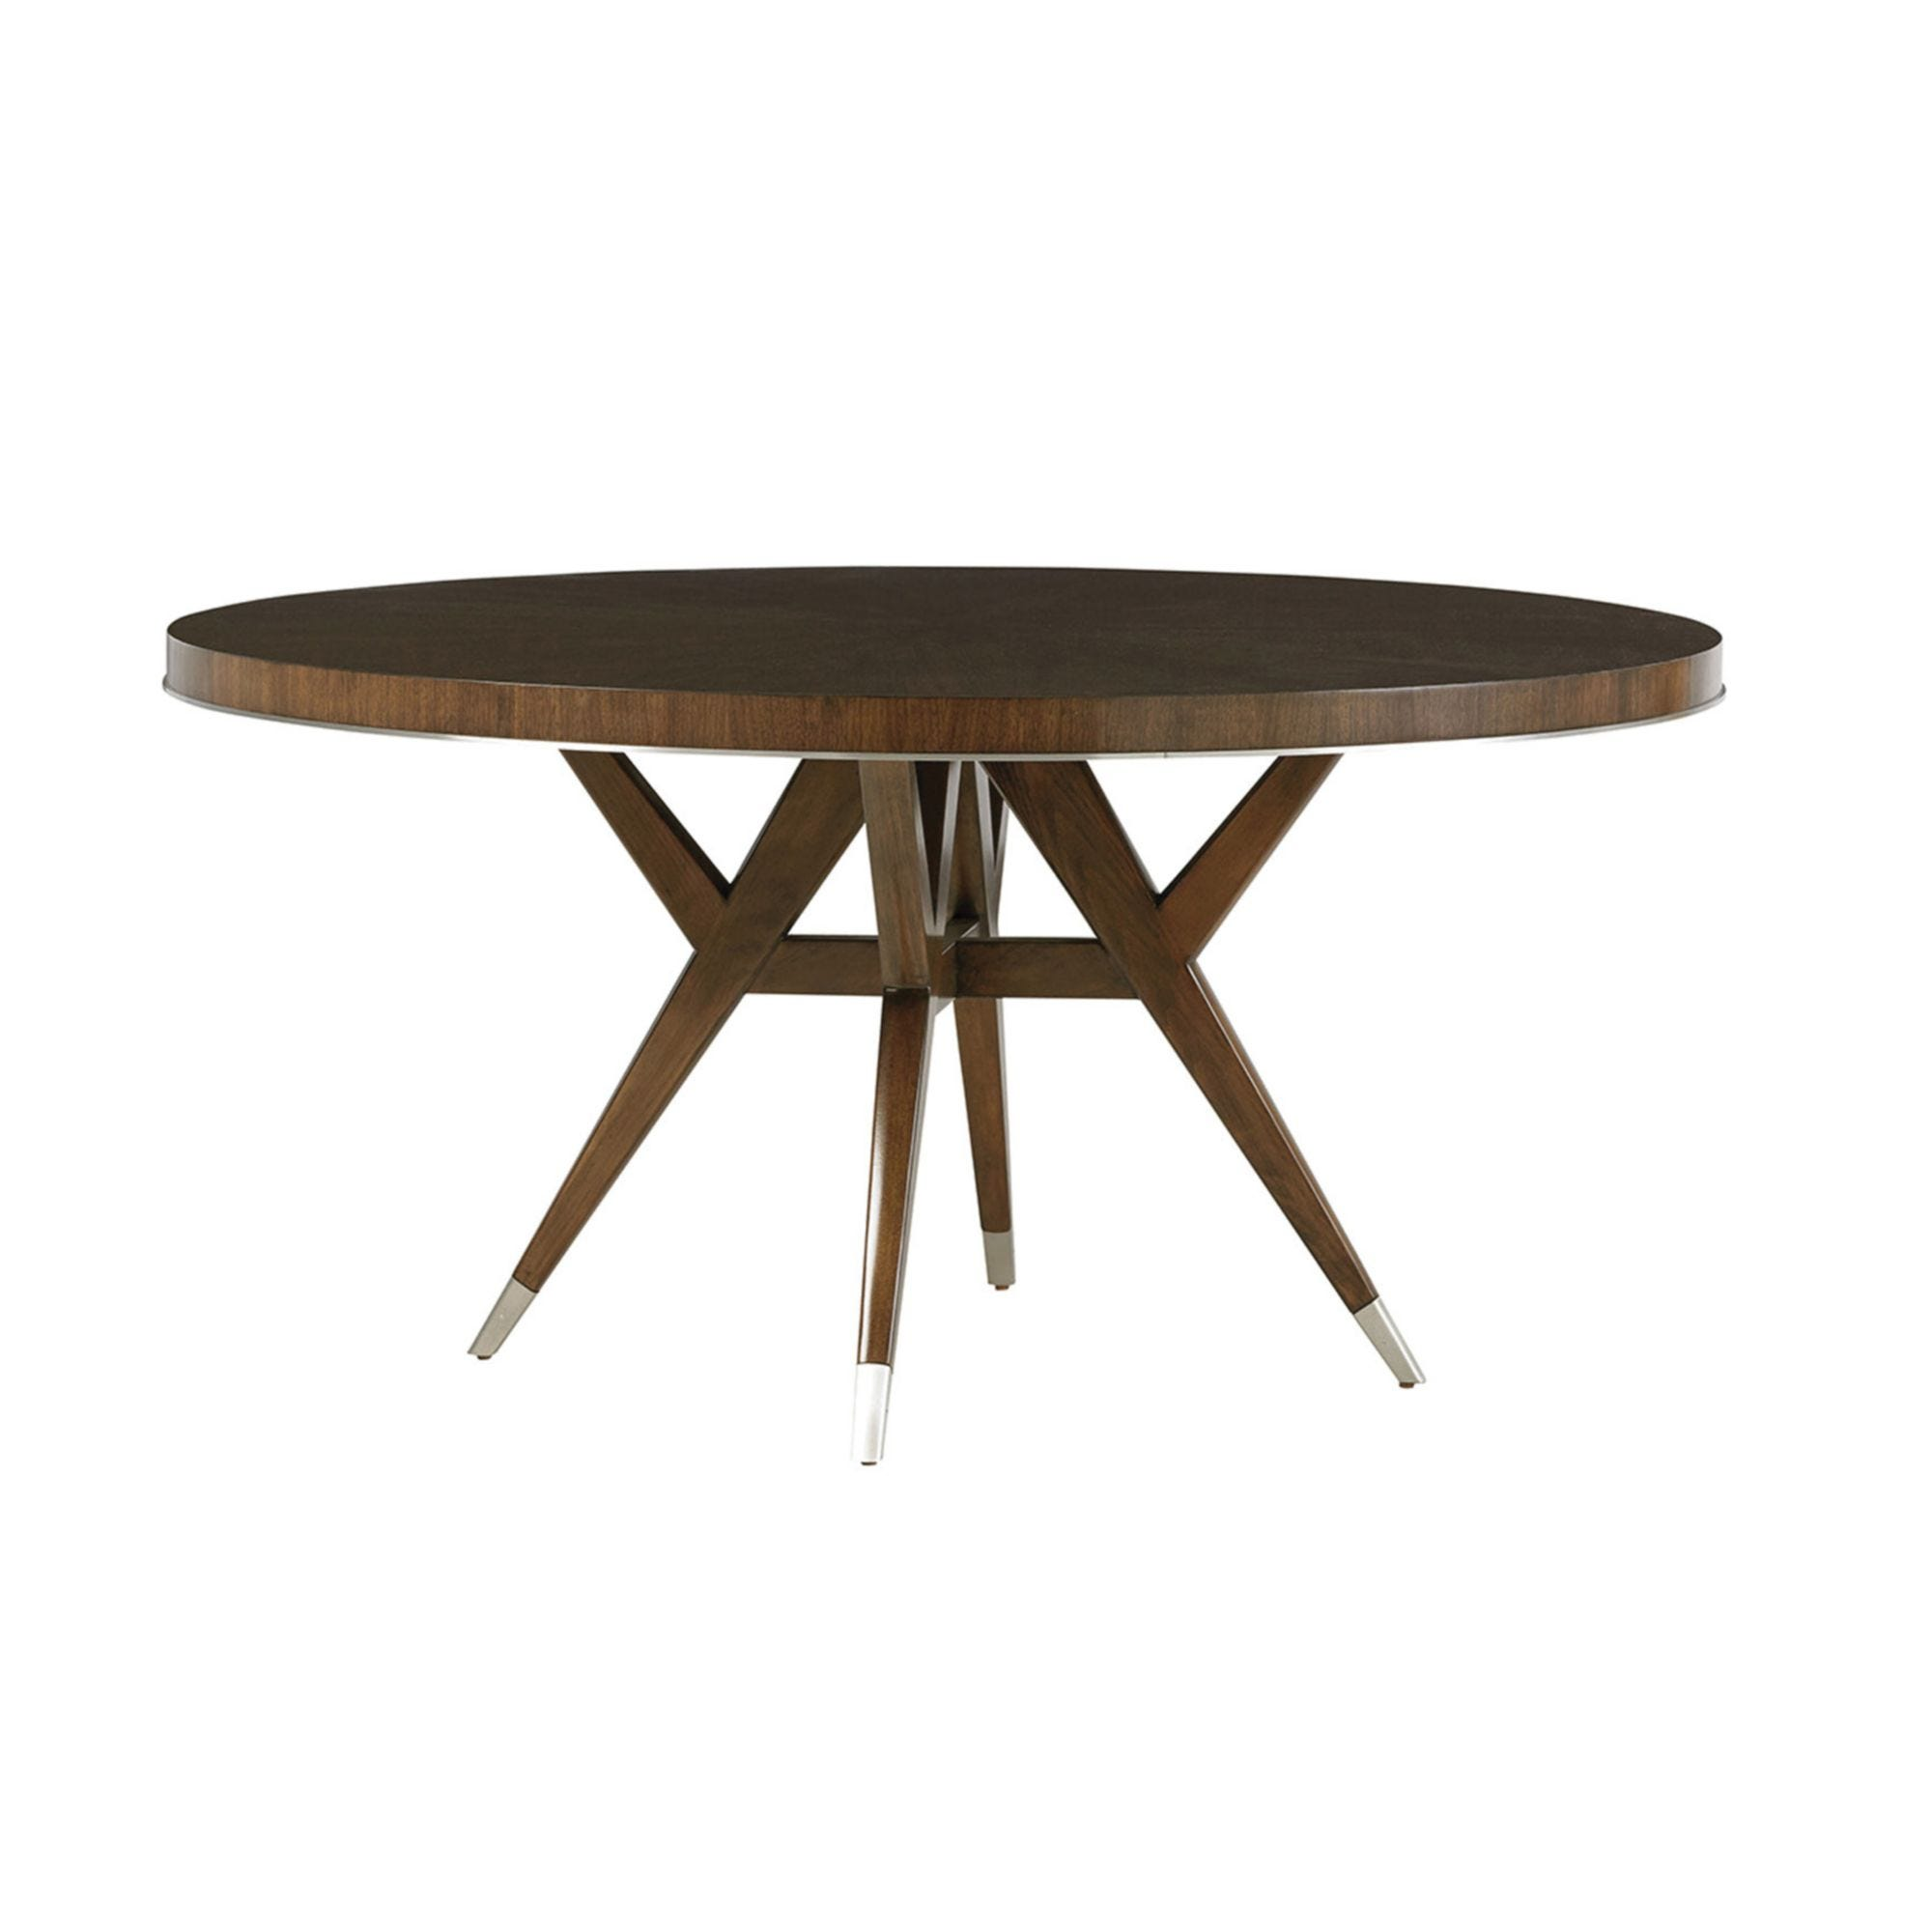 Lexington Macarthur Park Strathmore 60 Inch Round Dining Table  1?widthu003d700u0026heightu003d700u0026canvasu003d700:700u0026qualityu003d80u0026bg Coloru003d255,255,255u0026fitu003dbounds